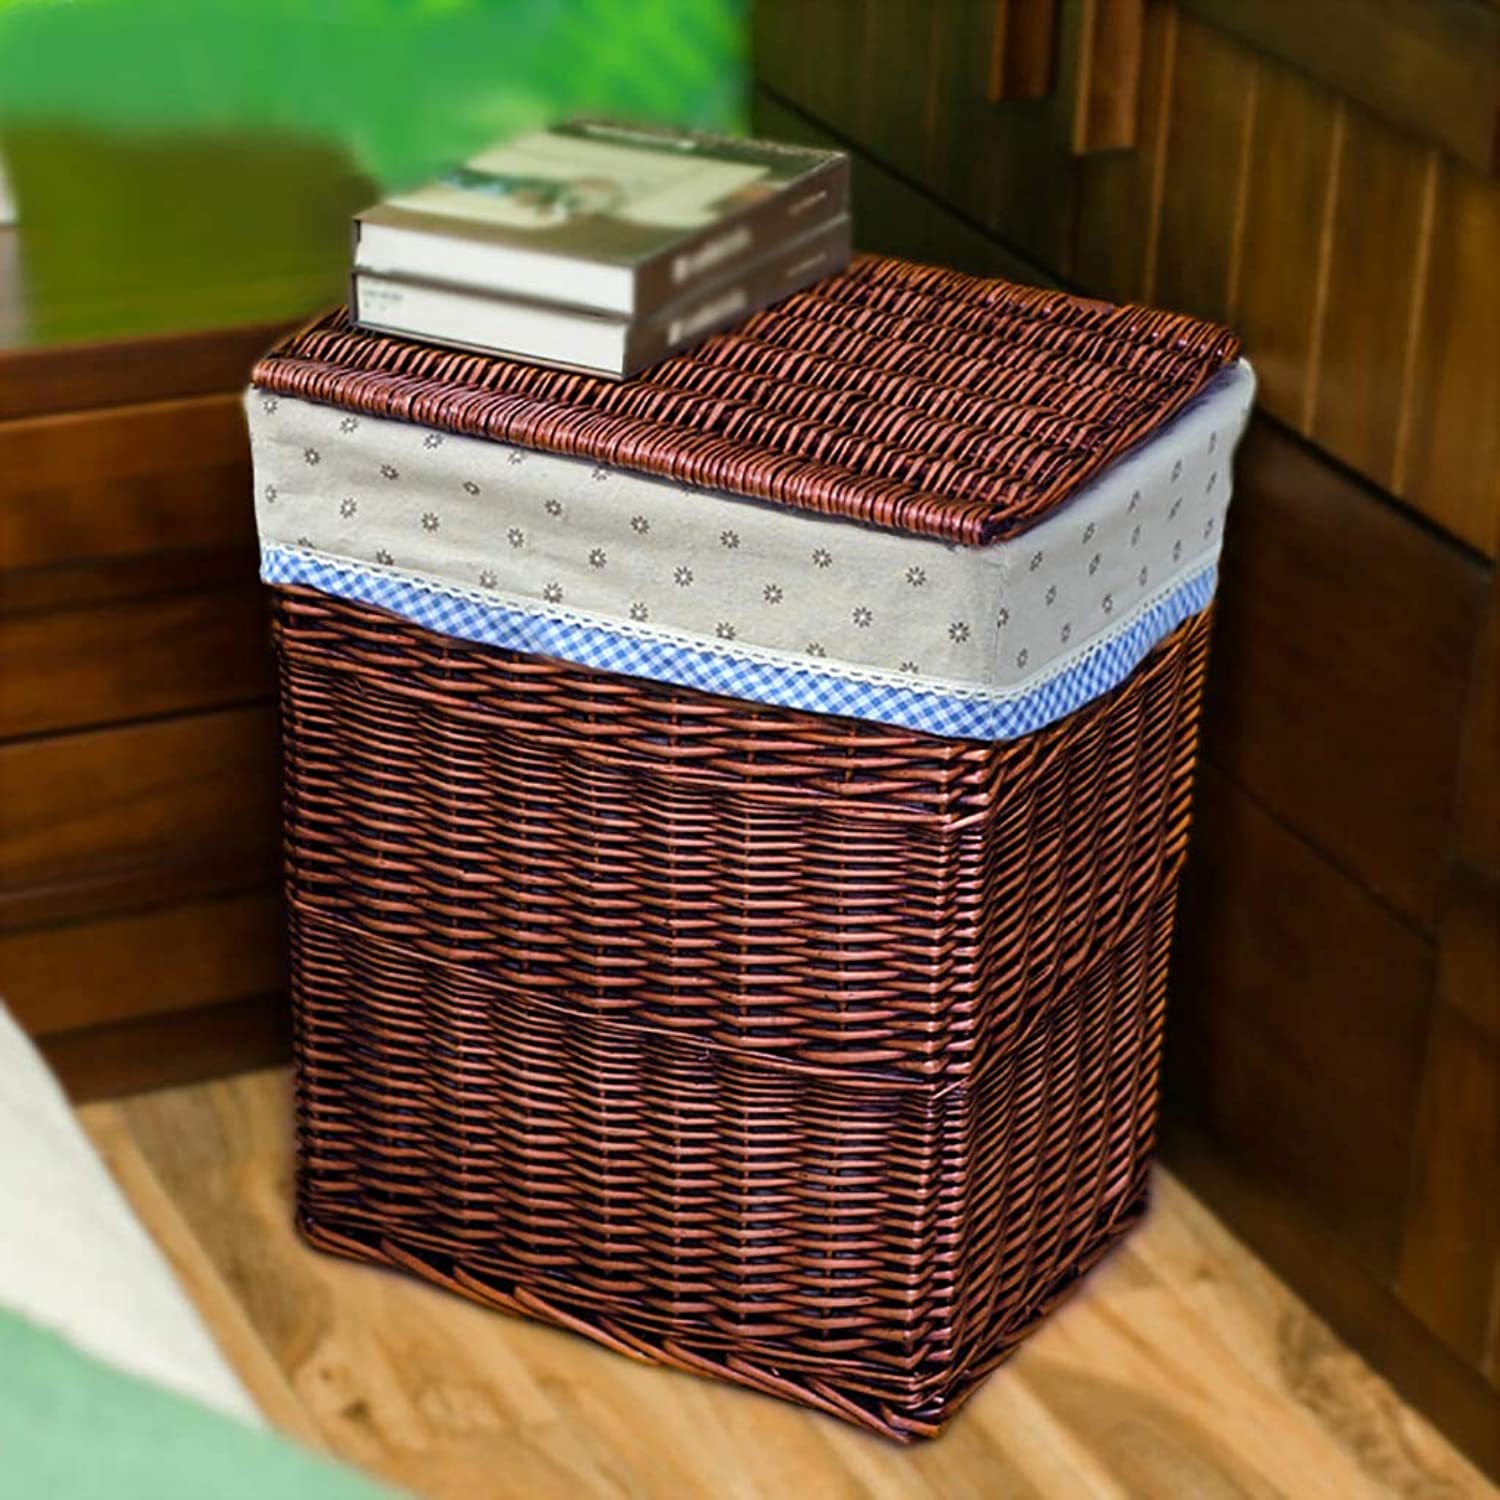 FANGFA Storage Basket Wicker Hand Weaving with Lid Living Room Bathroom Clothes Toy Finishing Box (2 colors, 2 (color   Brown-c, Size   38  28  46cm)